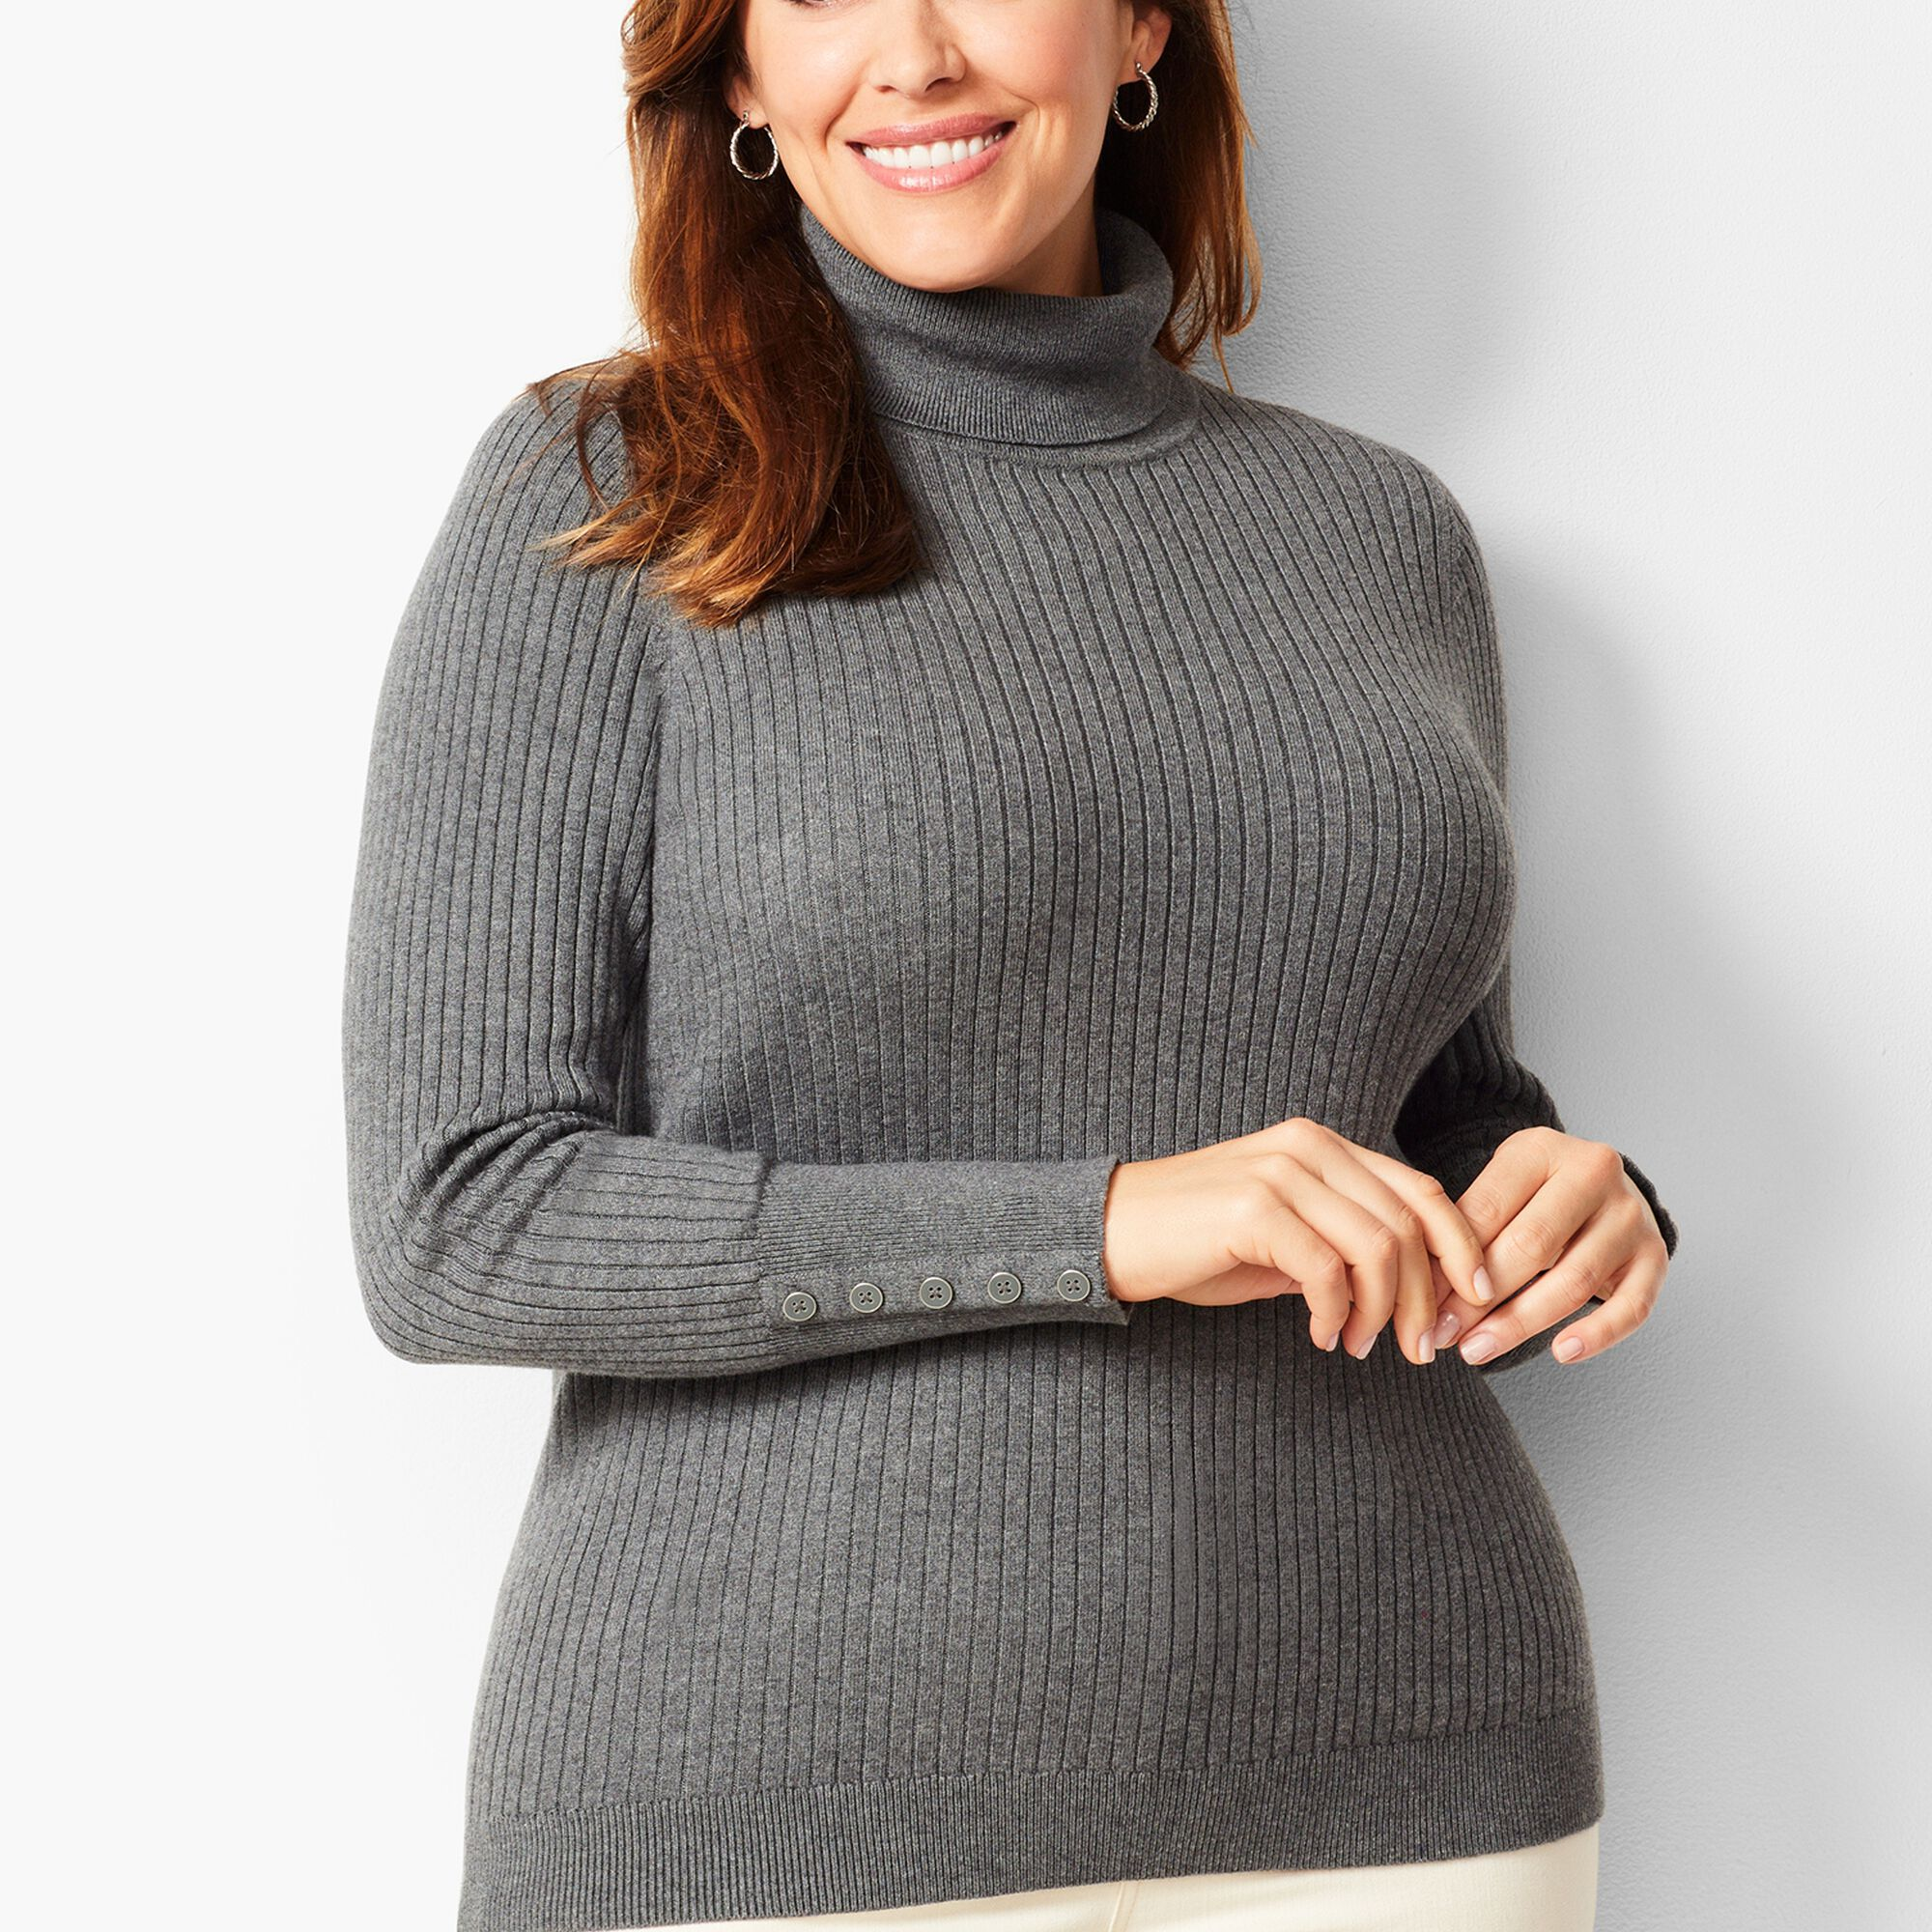 2226c33df1cf ... Ribbed Turtleneck Sweater - Solid Opens a New Window.